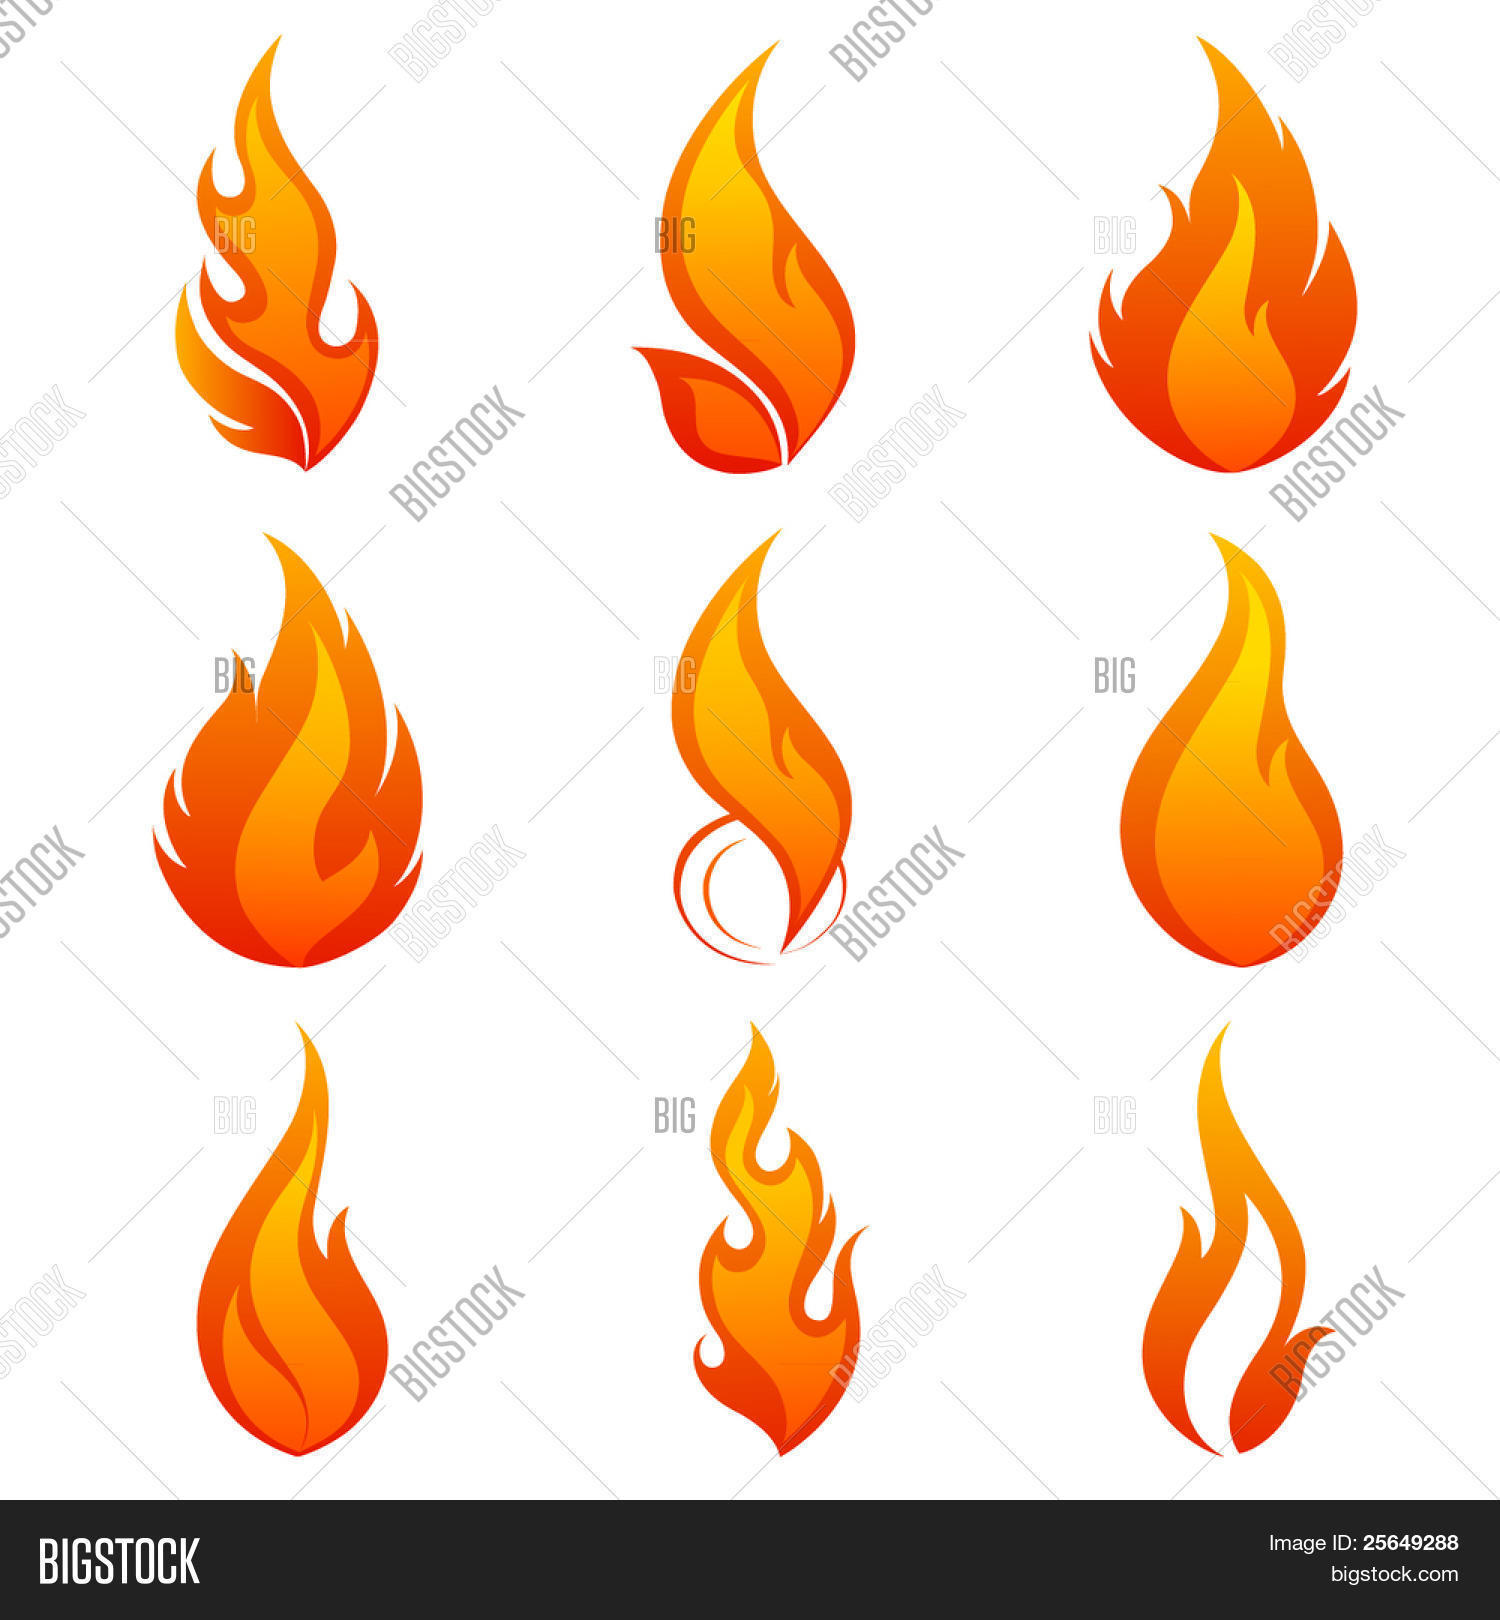 Fire Flames. Collage Vector & Photo | Bigstock